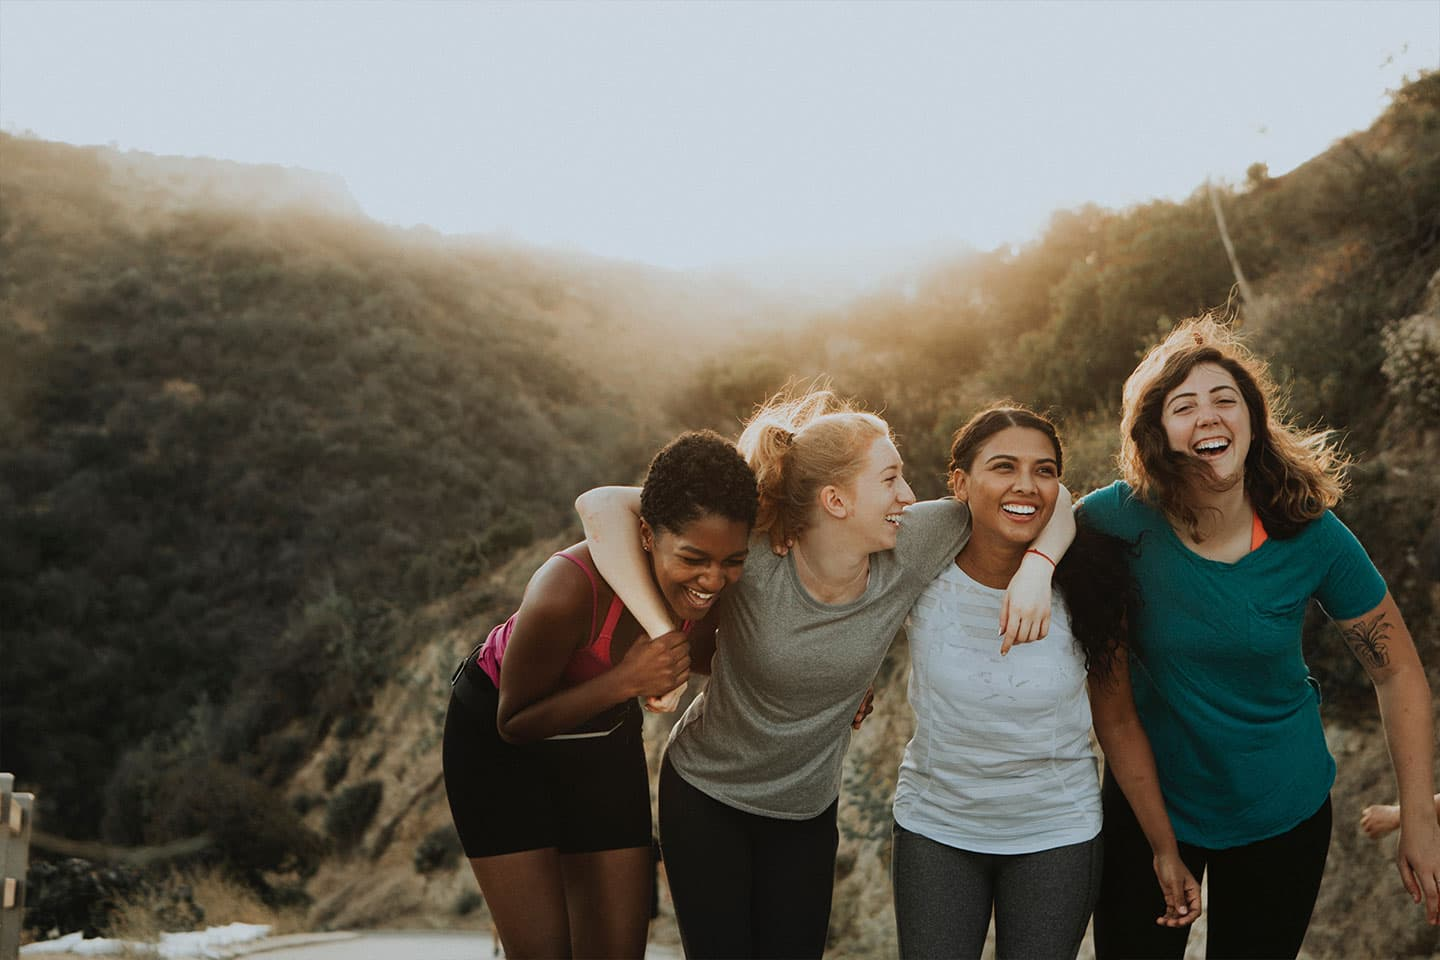 group of woman smiling together after a hike